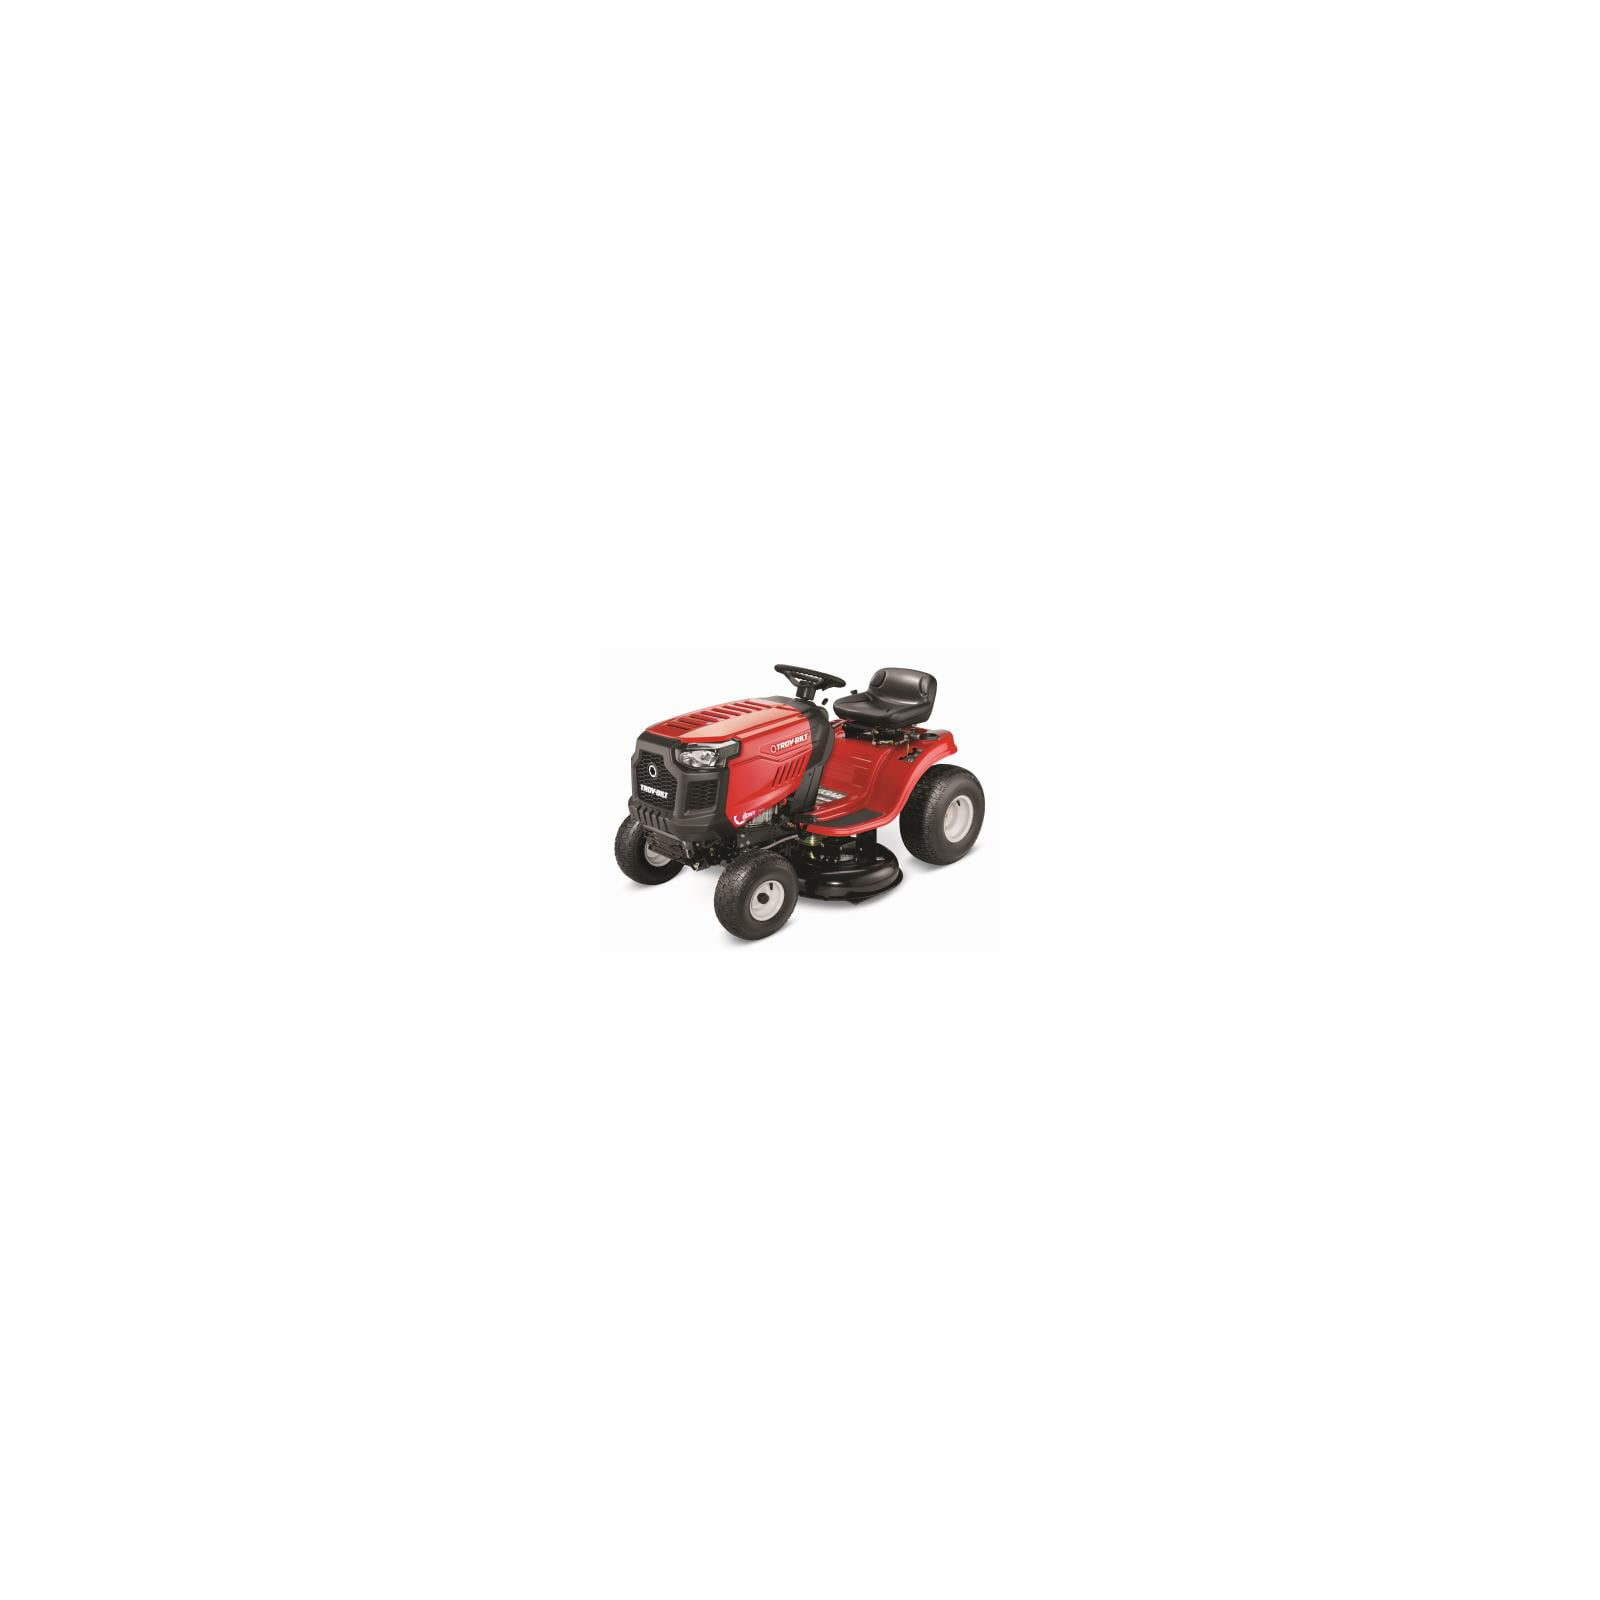 Mtd Products 13A877BS066 7-Speed Riding Lawn Tractor, 547cc Engine, 42-In. by MTD PRODUCTS INC